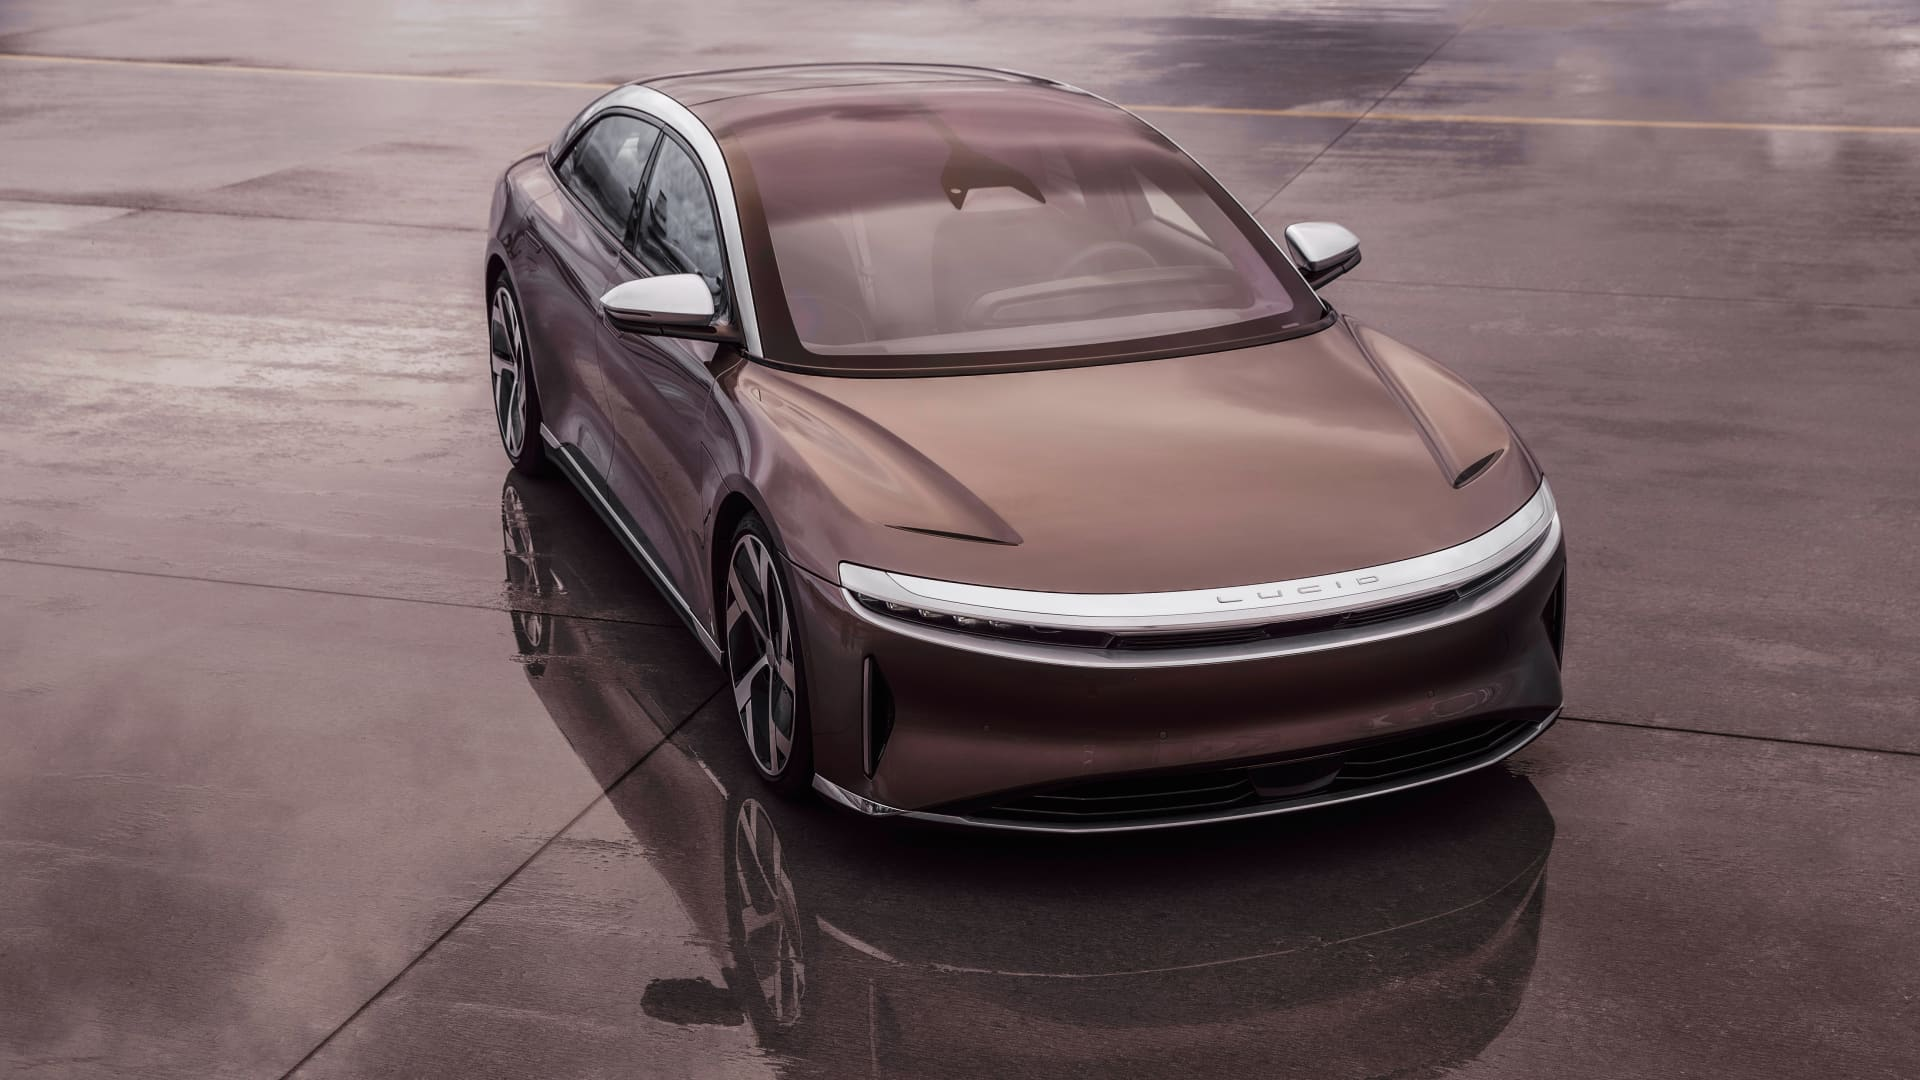 Exterior of the Lucid Air sedan, which debuted Sept. 9, 2020 as the company's first production vehicle.